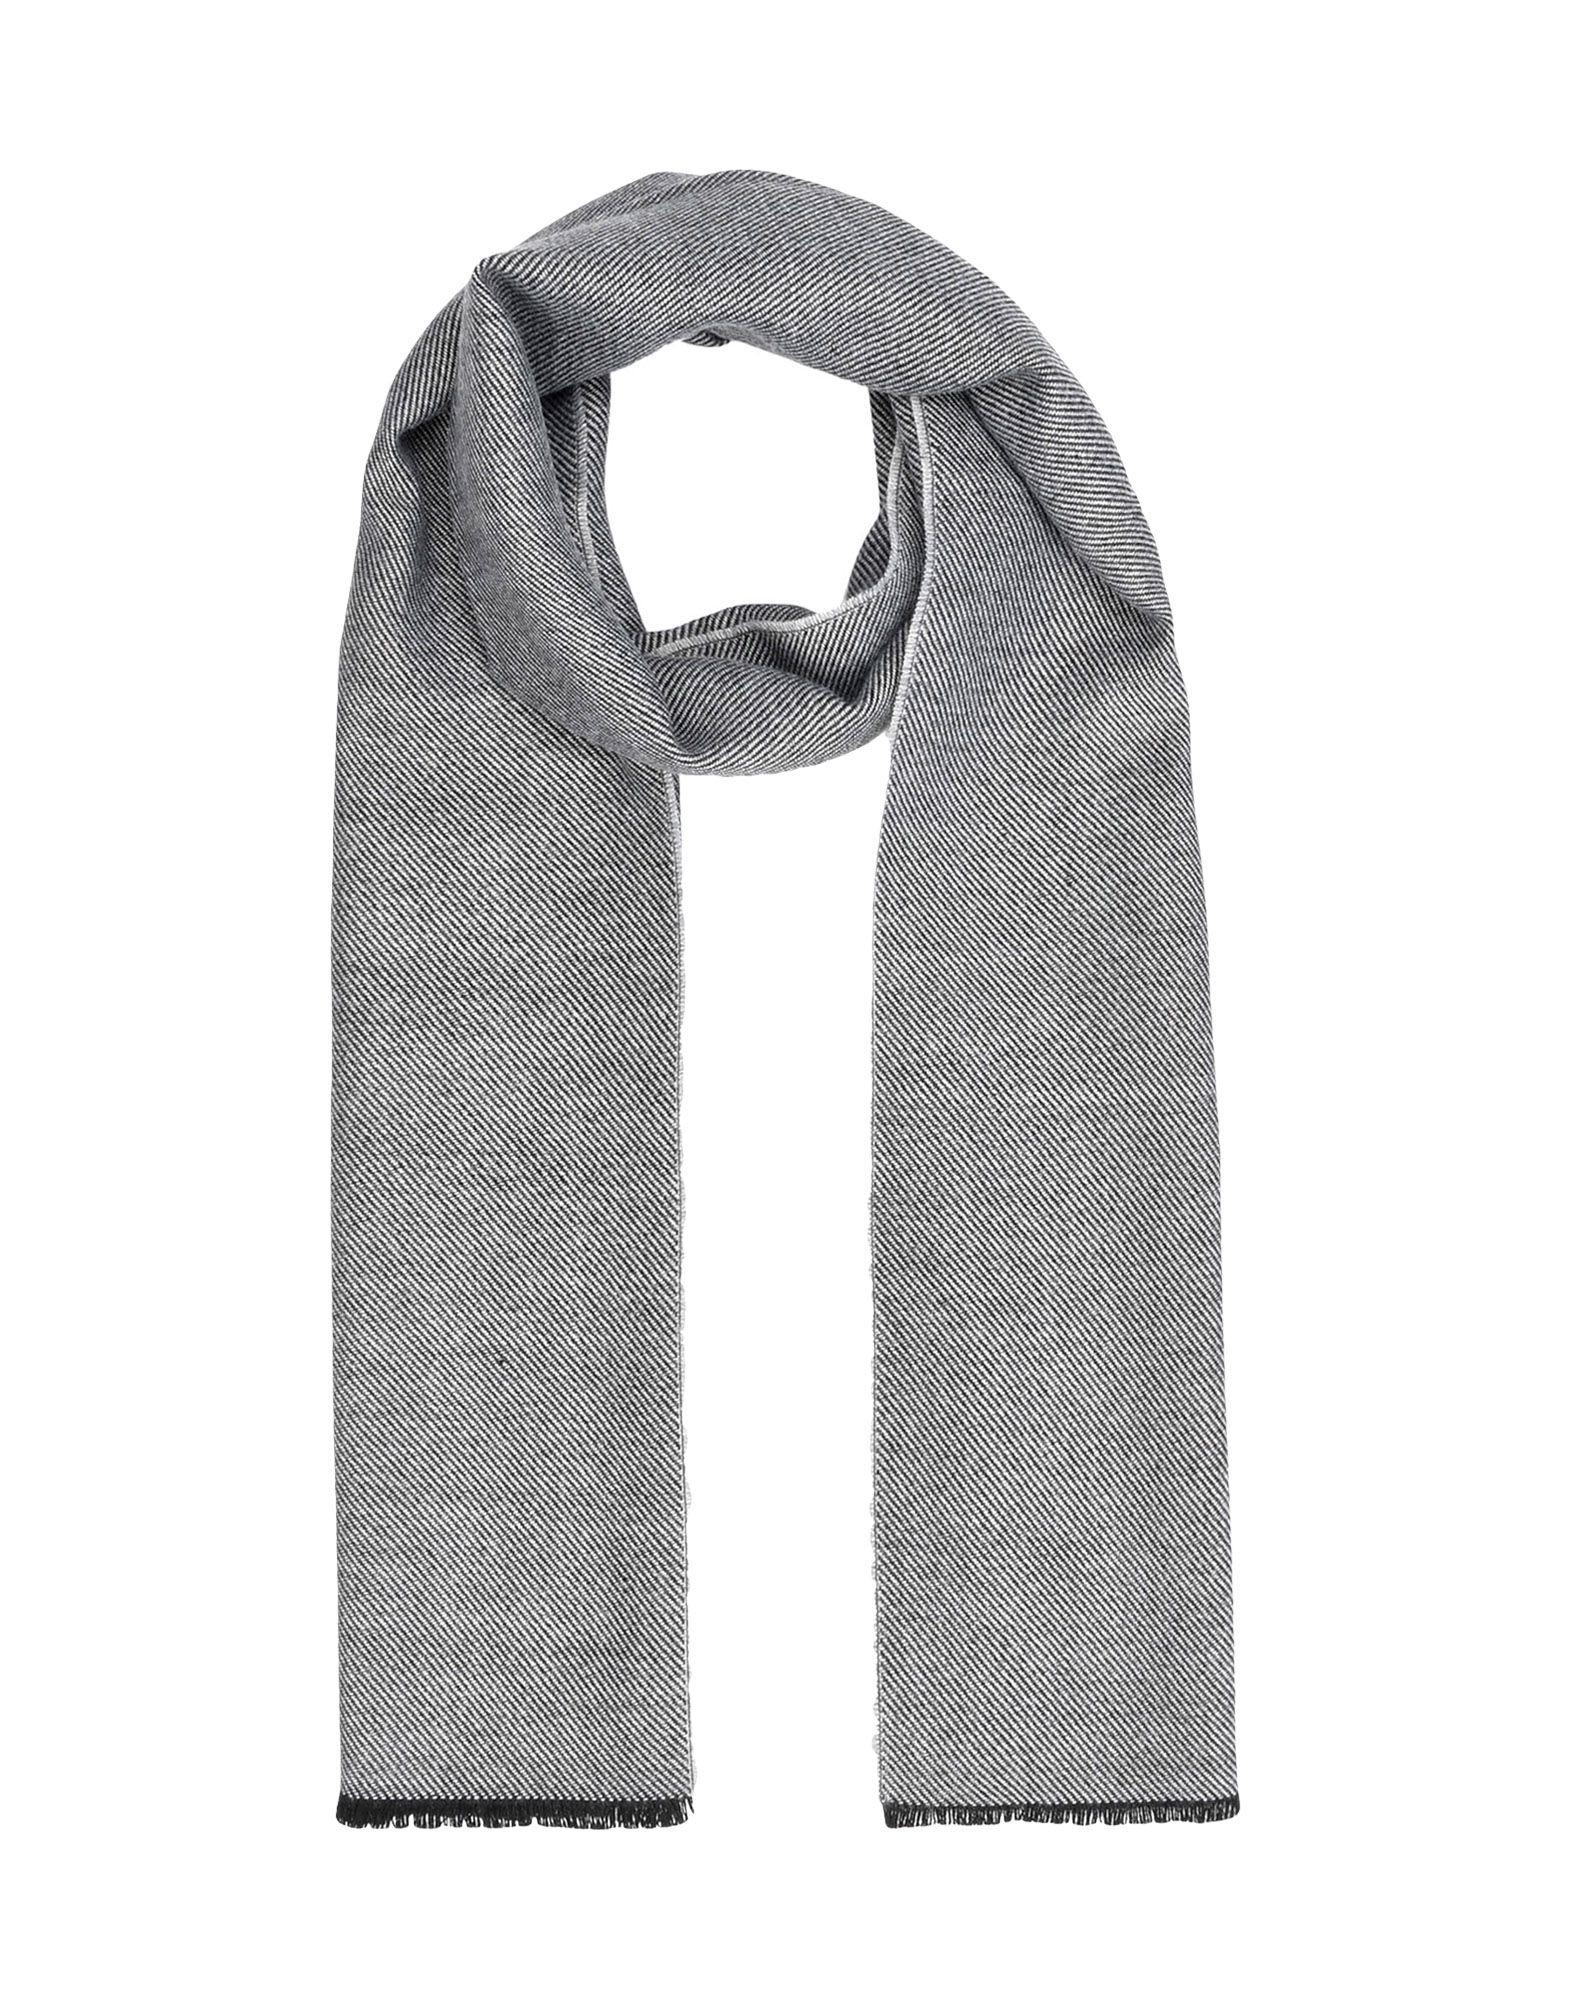 ACCESSORIES - Oblong scarves Howlin hbZYnb6